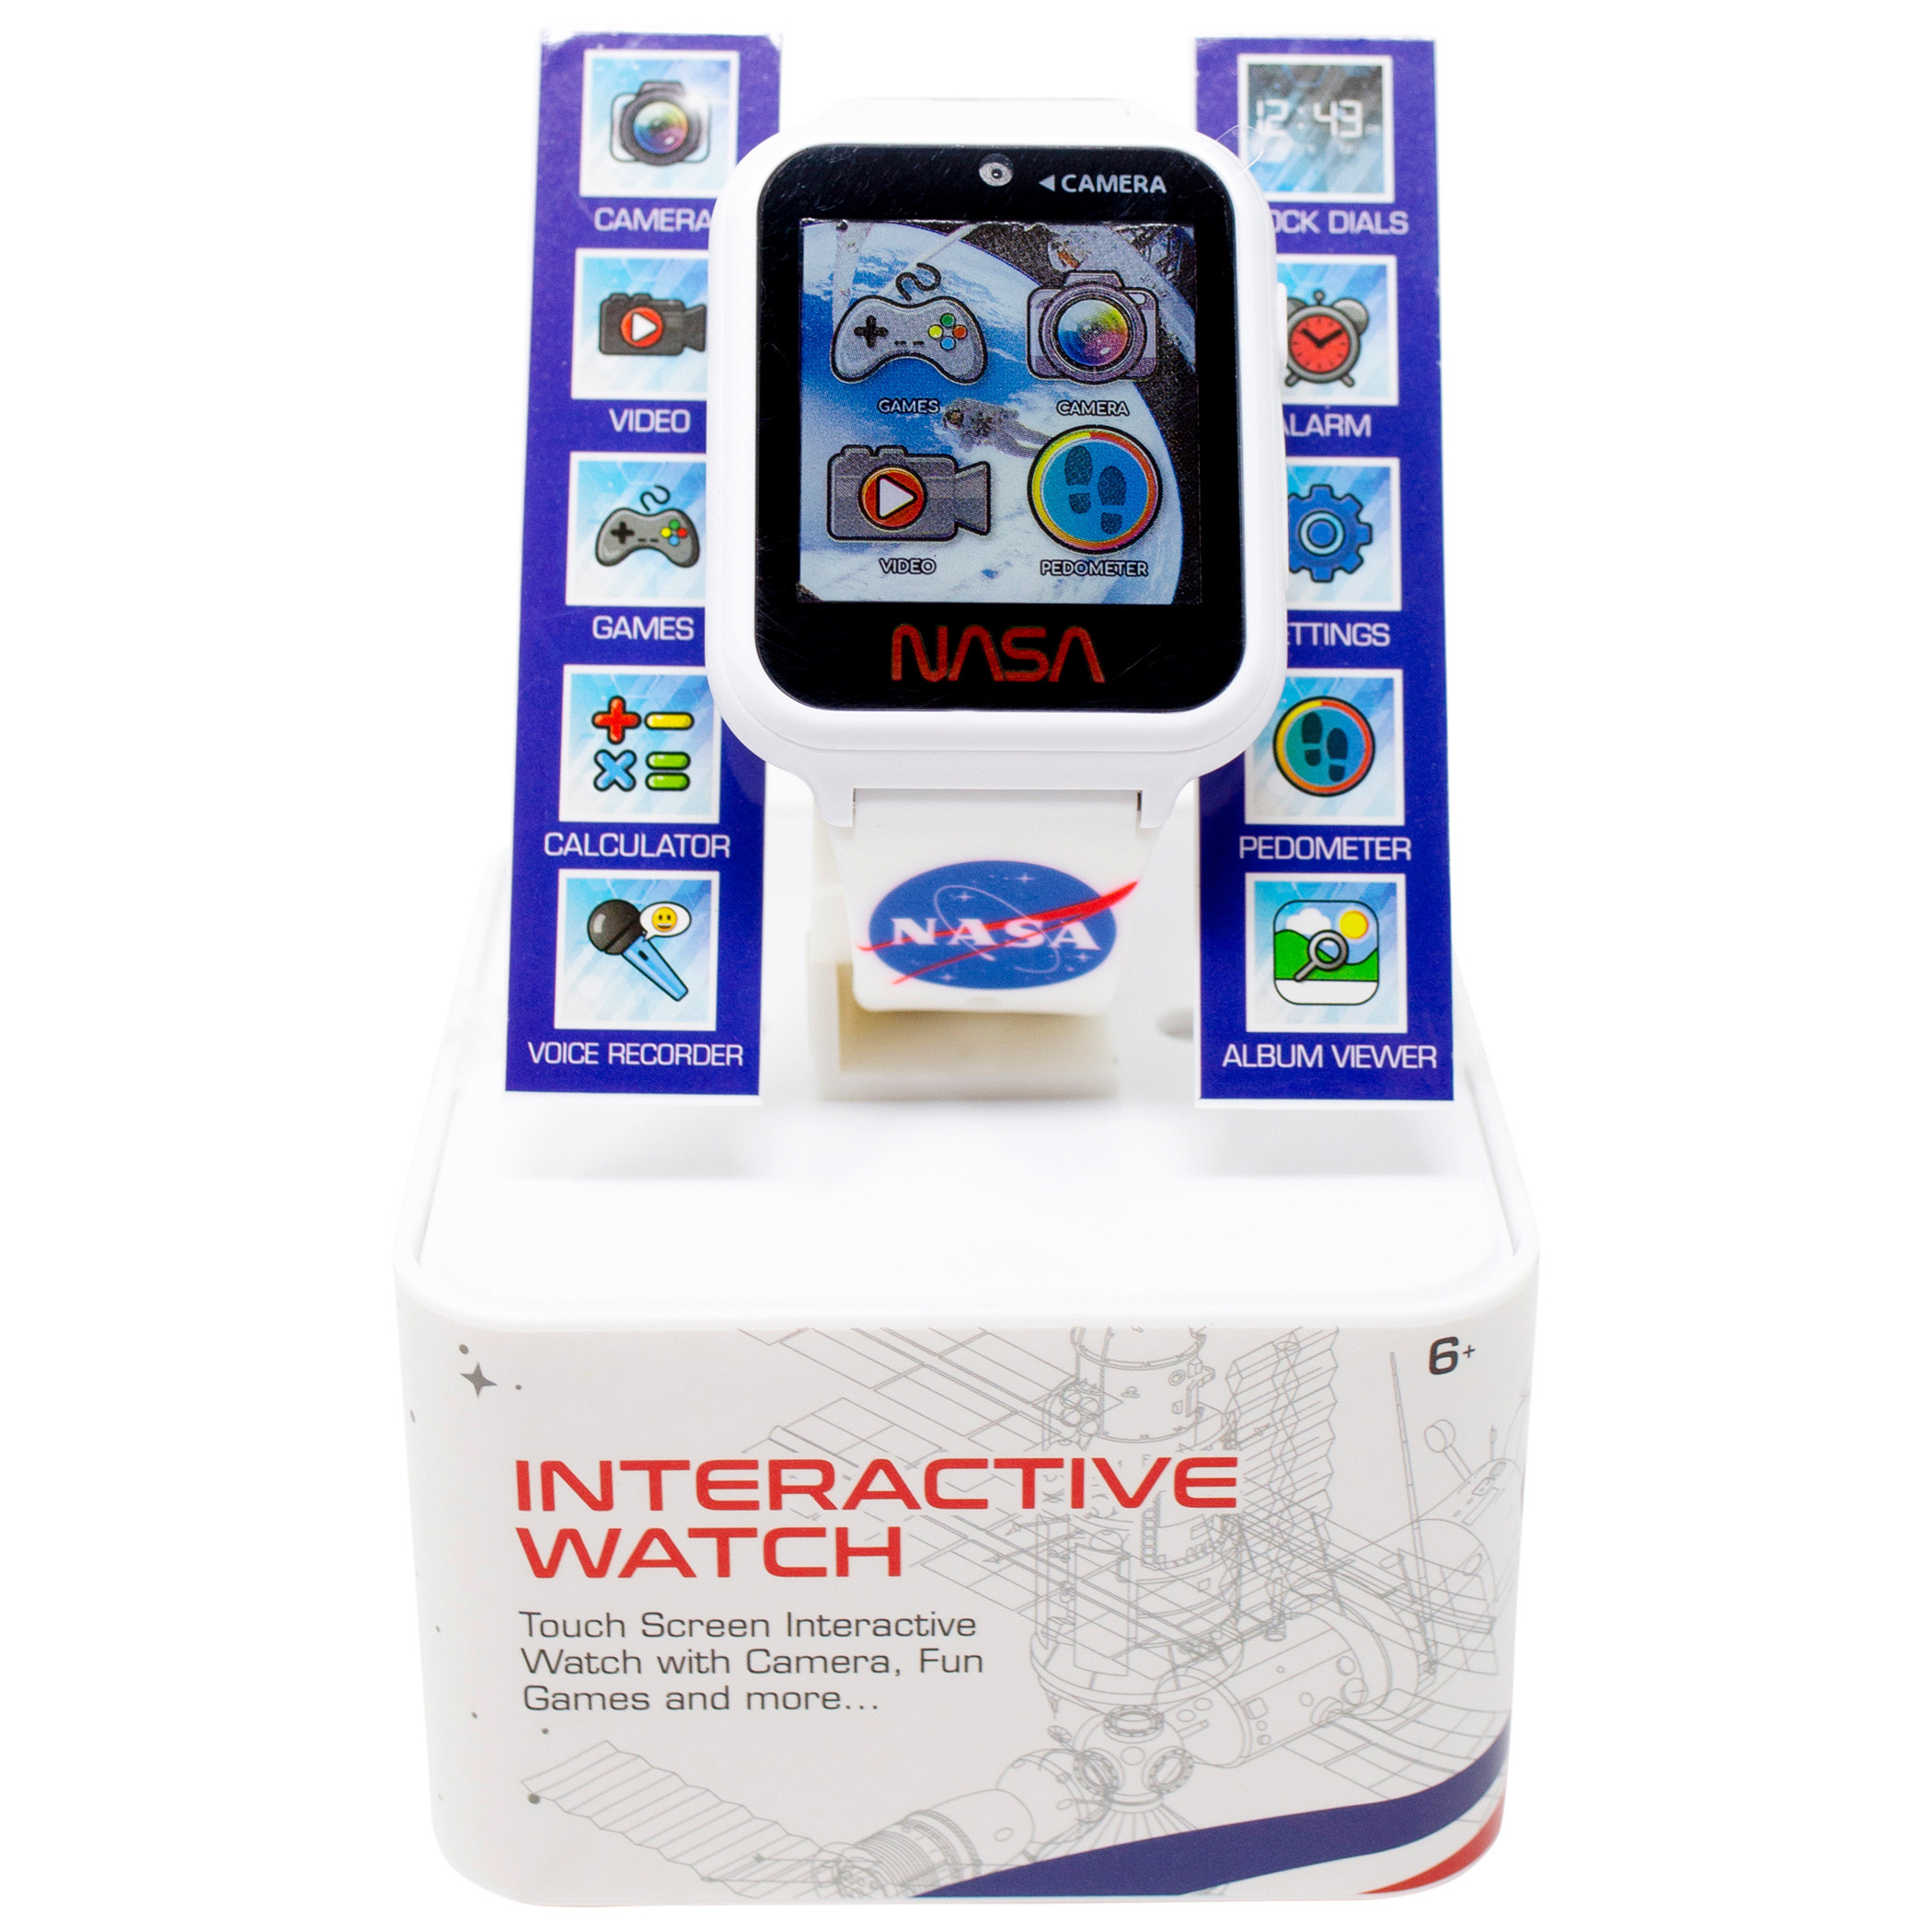 NASA Accutime Interactive Kids Watch